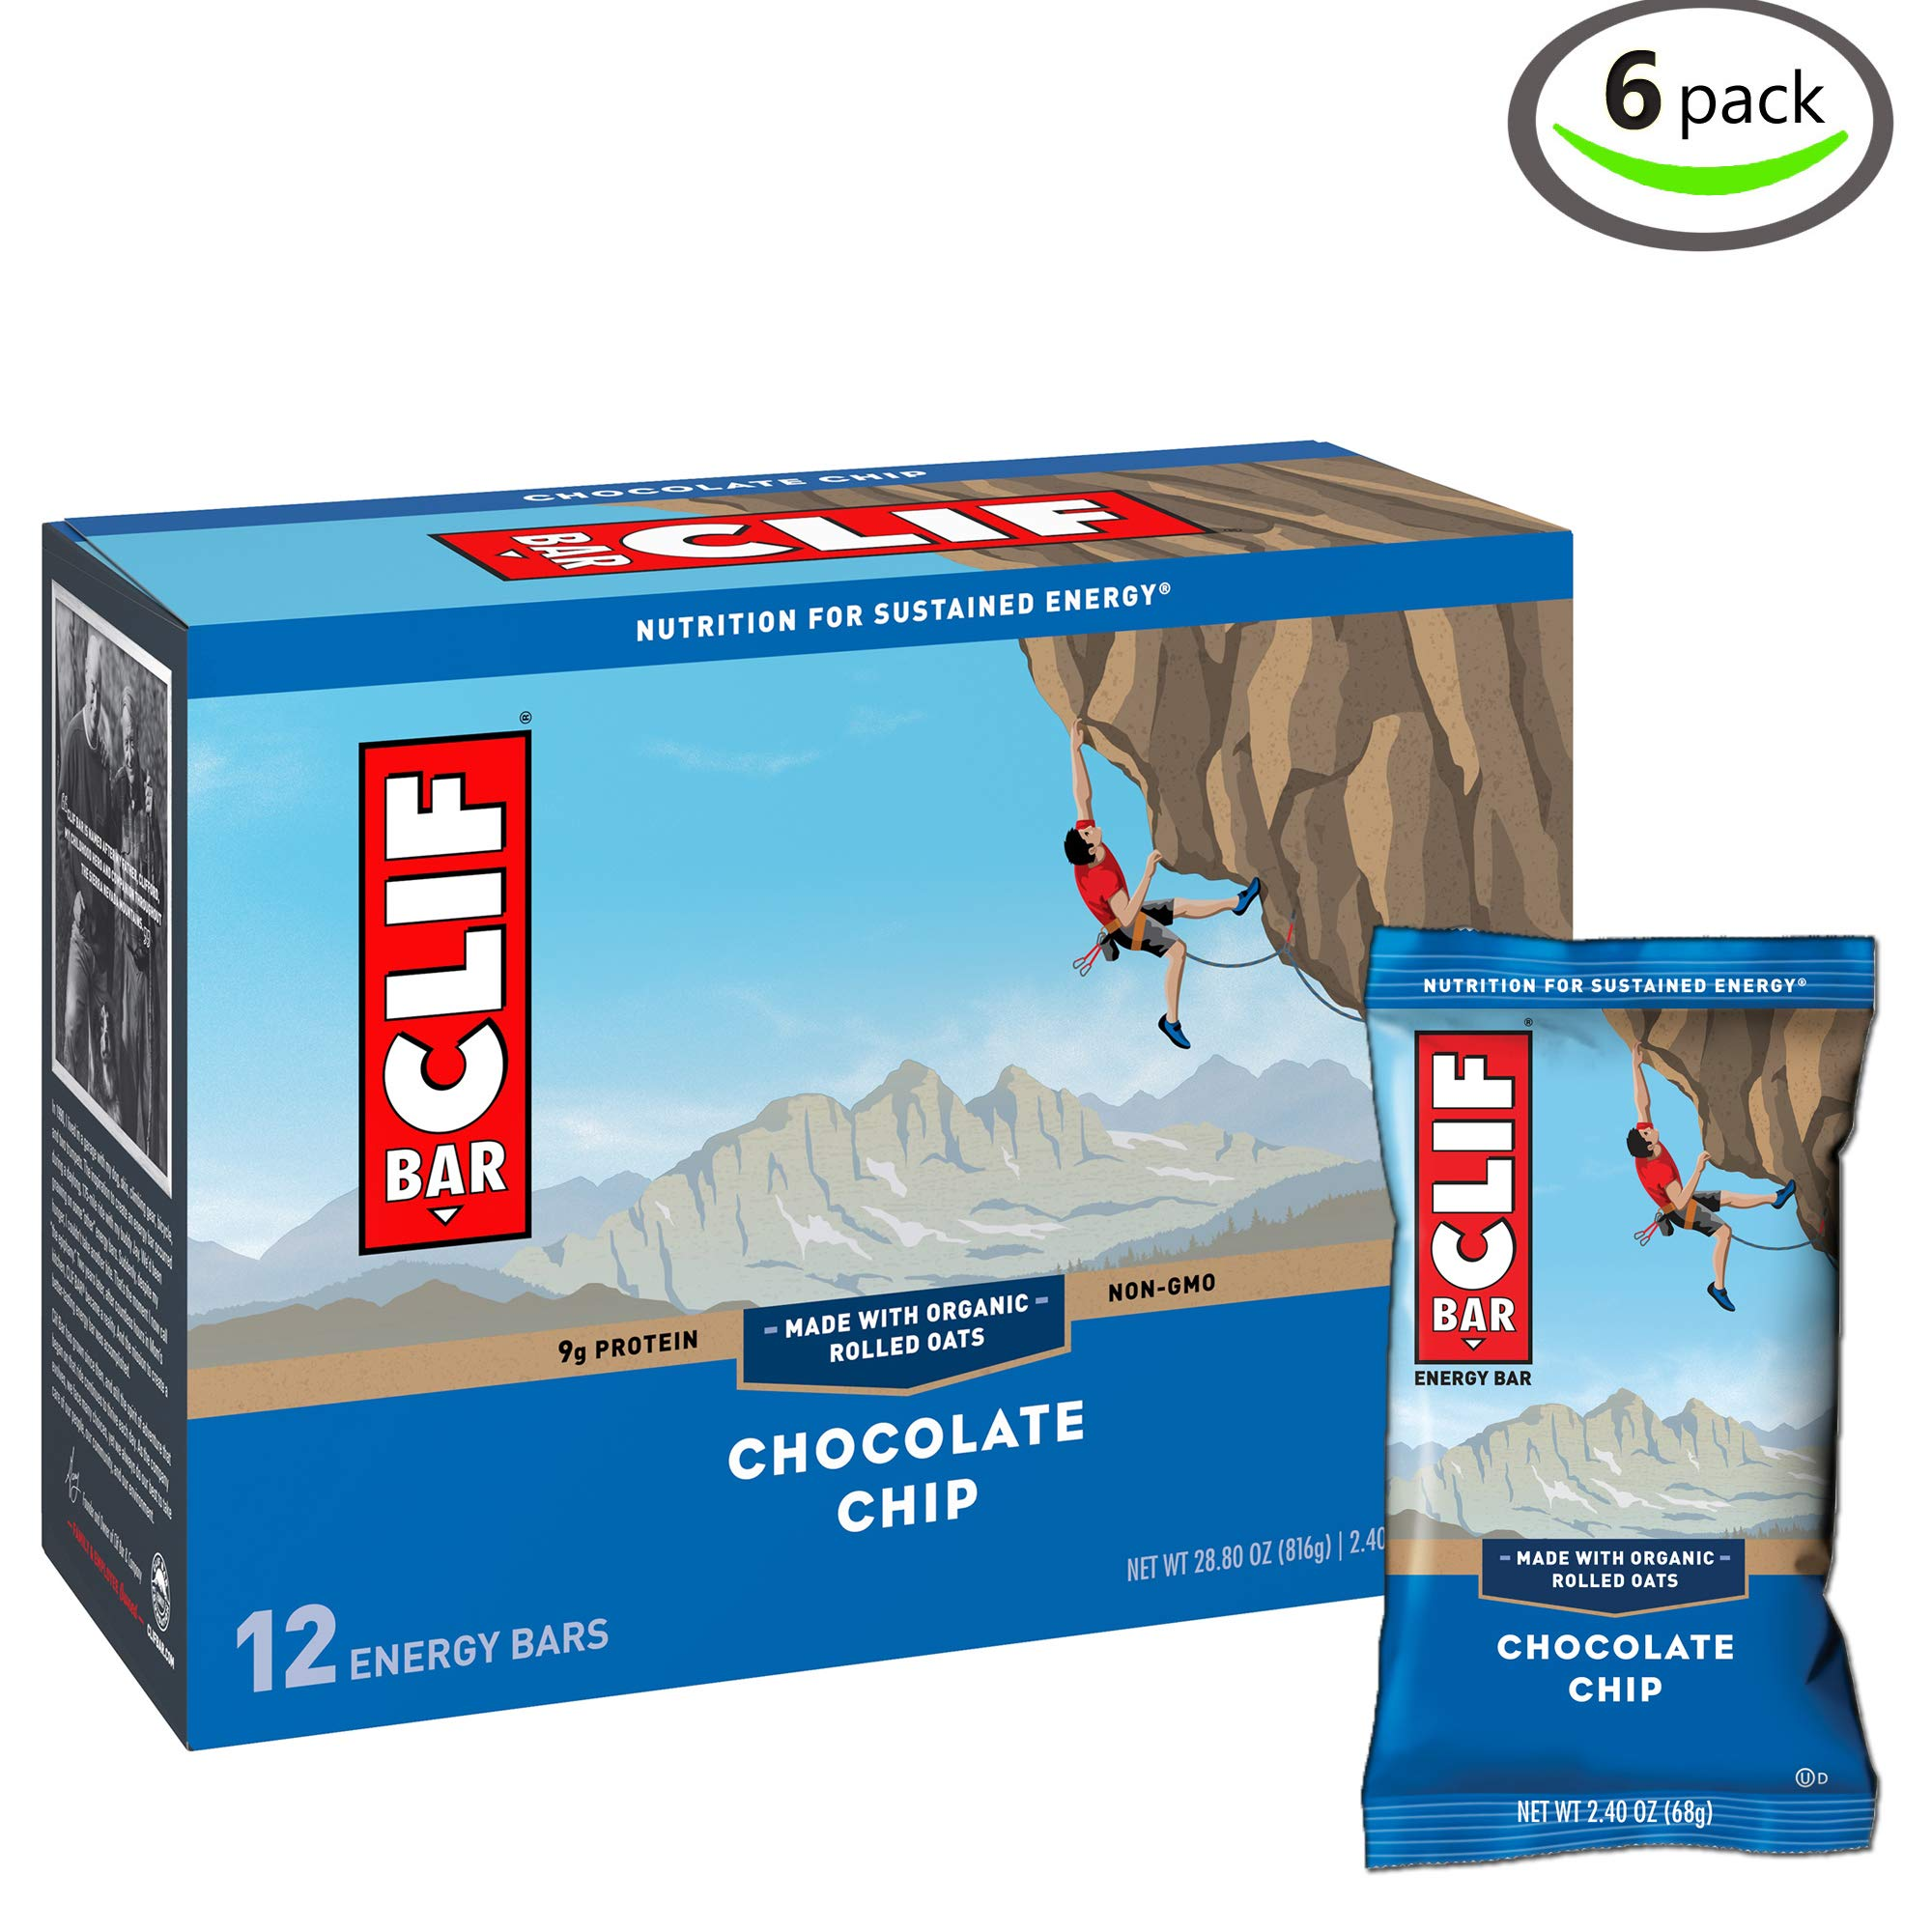 Clif Bar Energy Bar, Chocolate Chip, 2.4 Ounce, 12 Count - Pack of 6 by Clif Bar